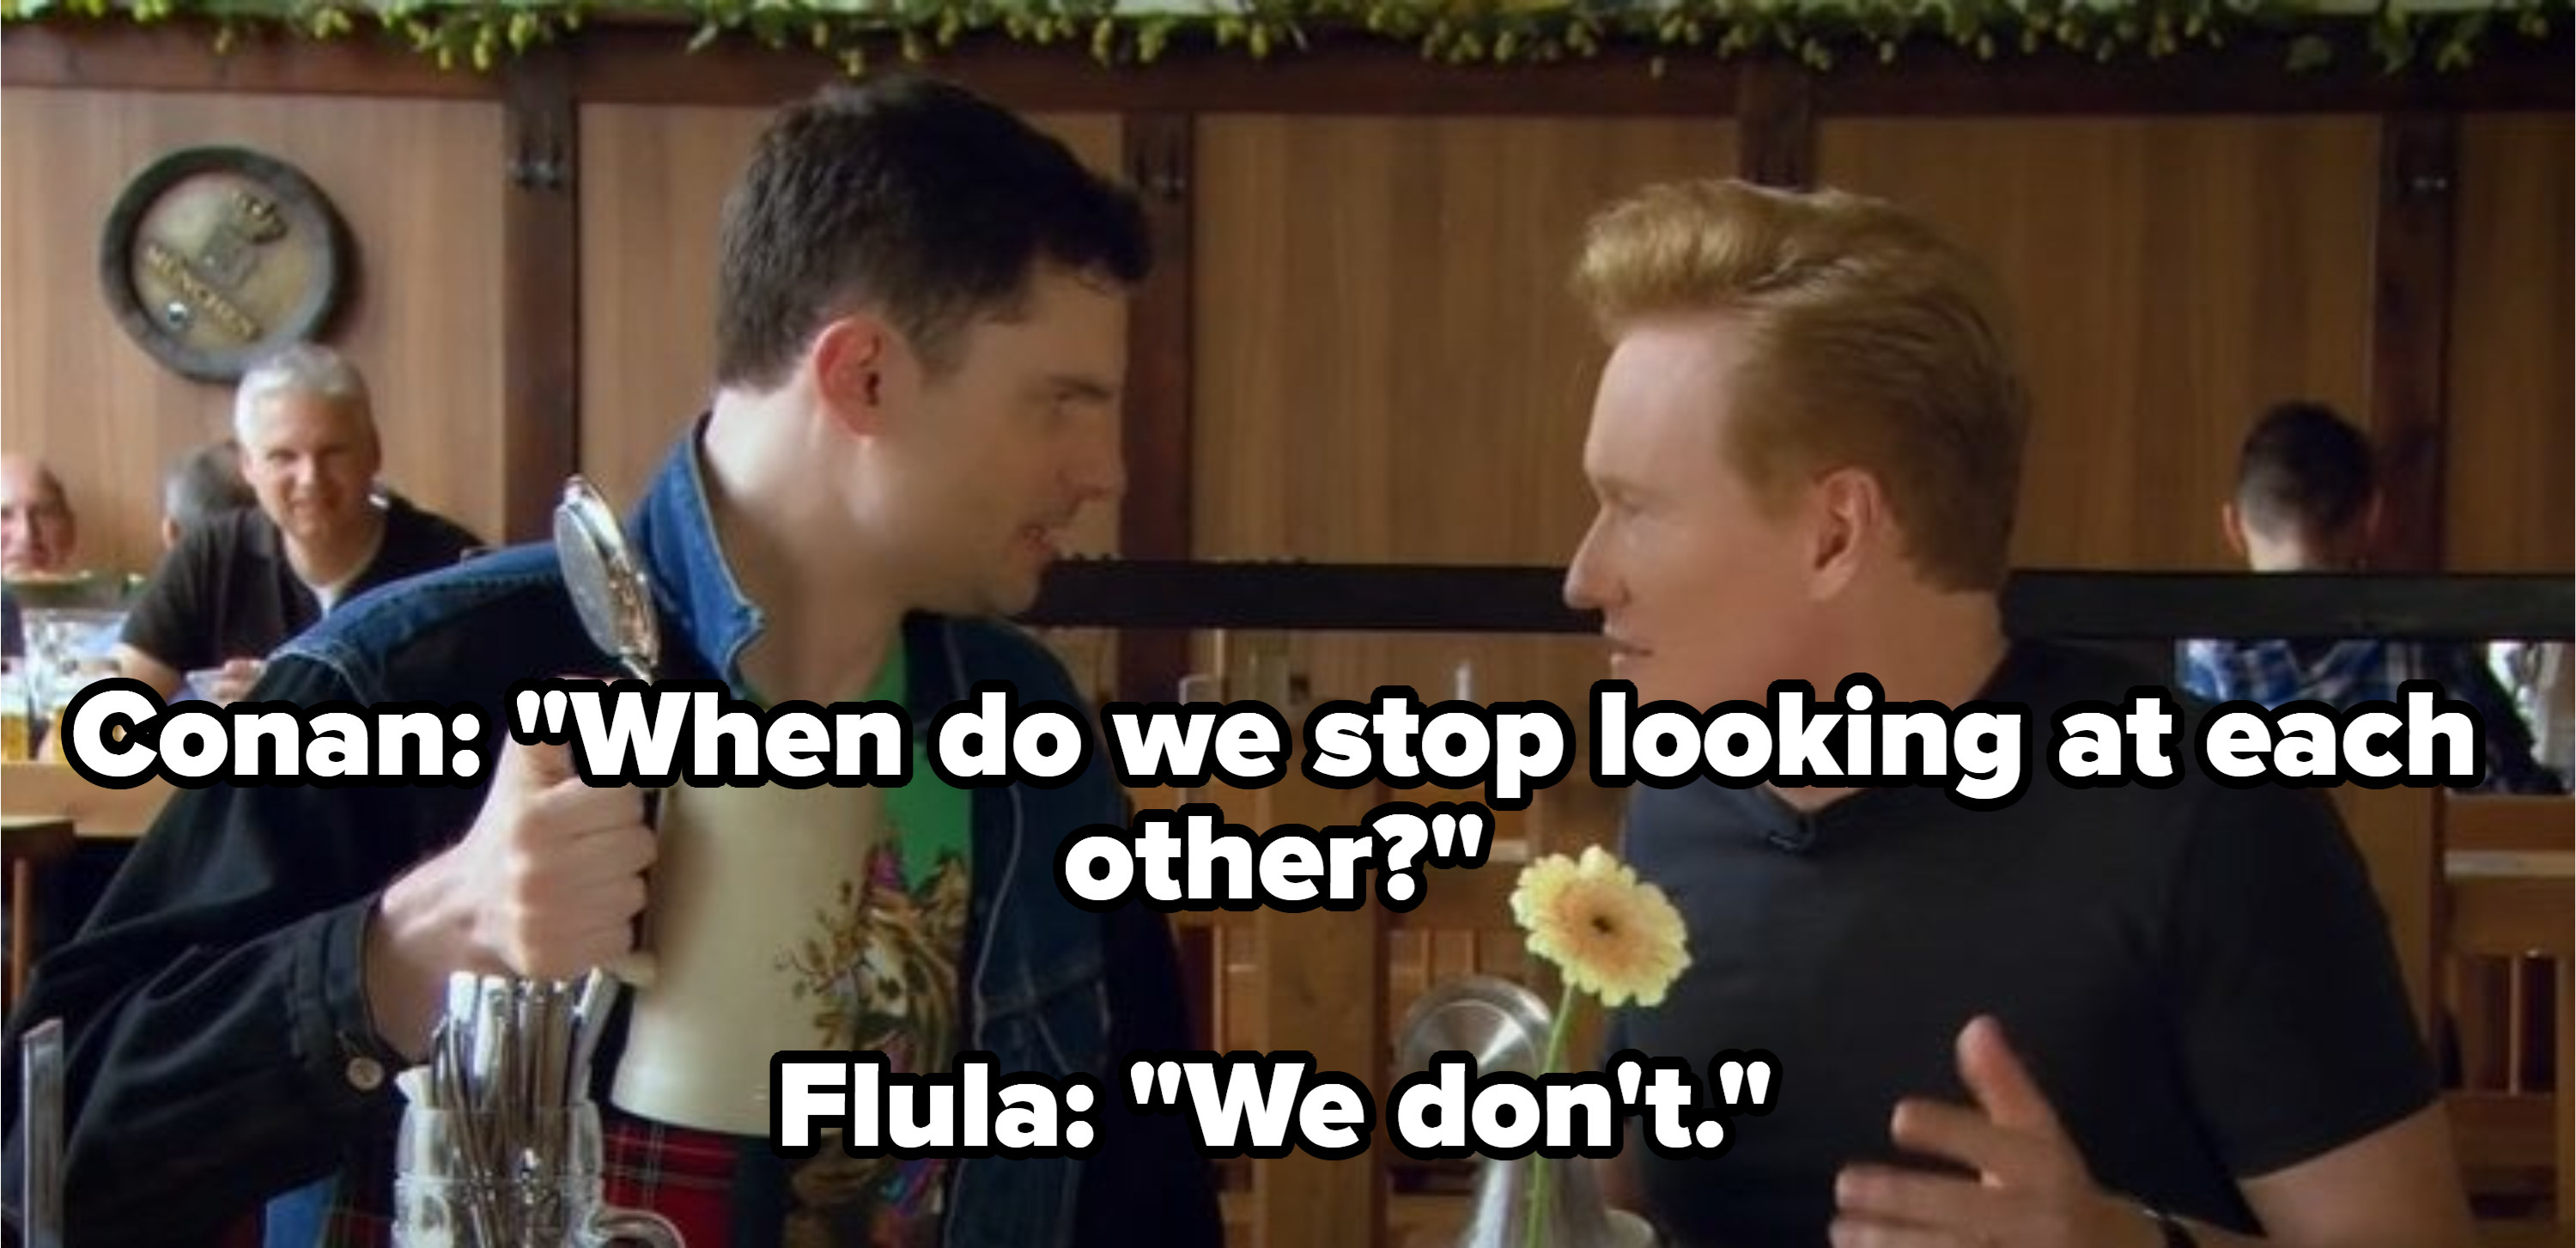 Conan and Flula Borg staring at each other with pints of beer